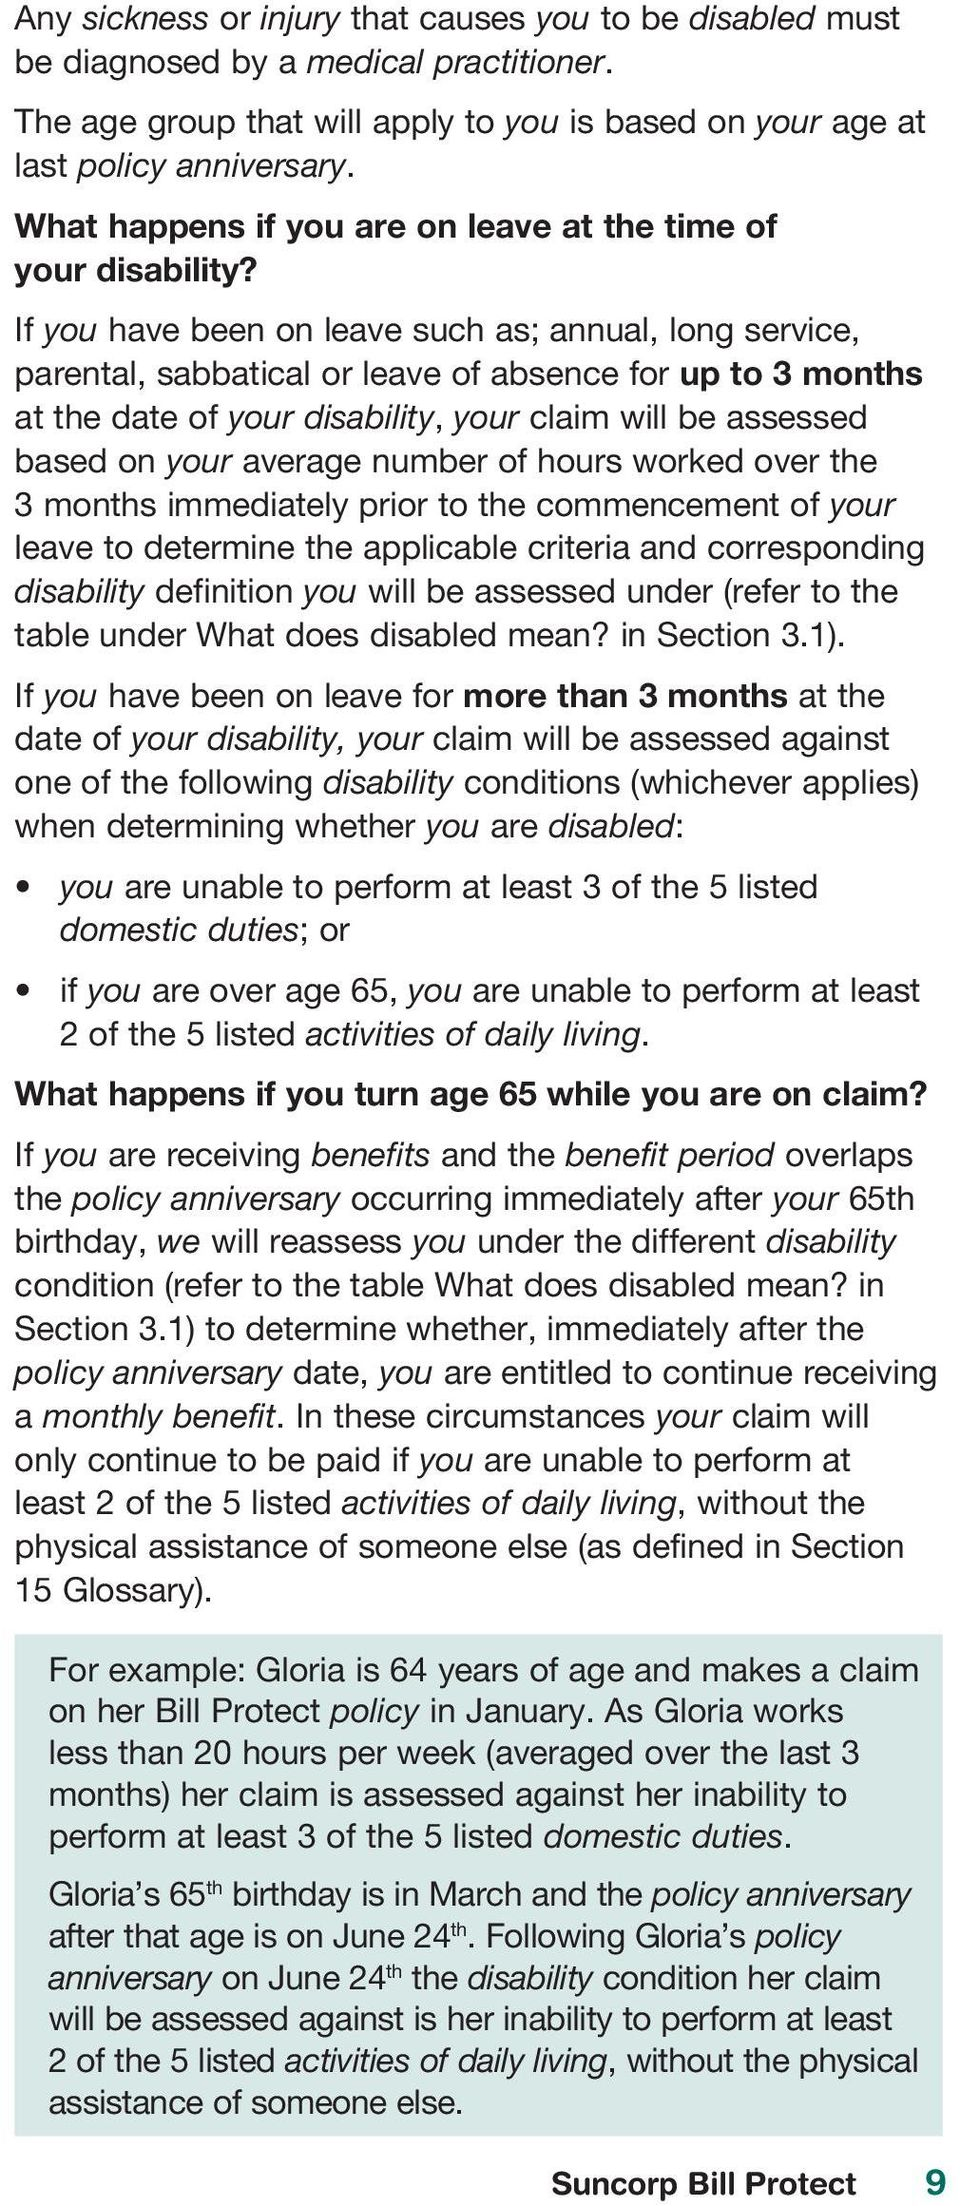 If you have been on leave such as; annual, long service, parental, sabbatical or leave of absence for up to 3 months at the date of your disability, your claim will be assessed based on your average